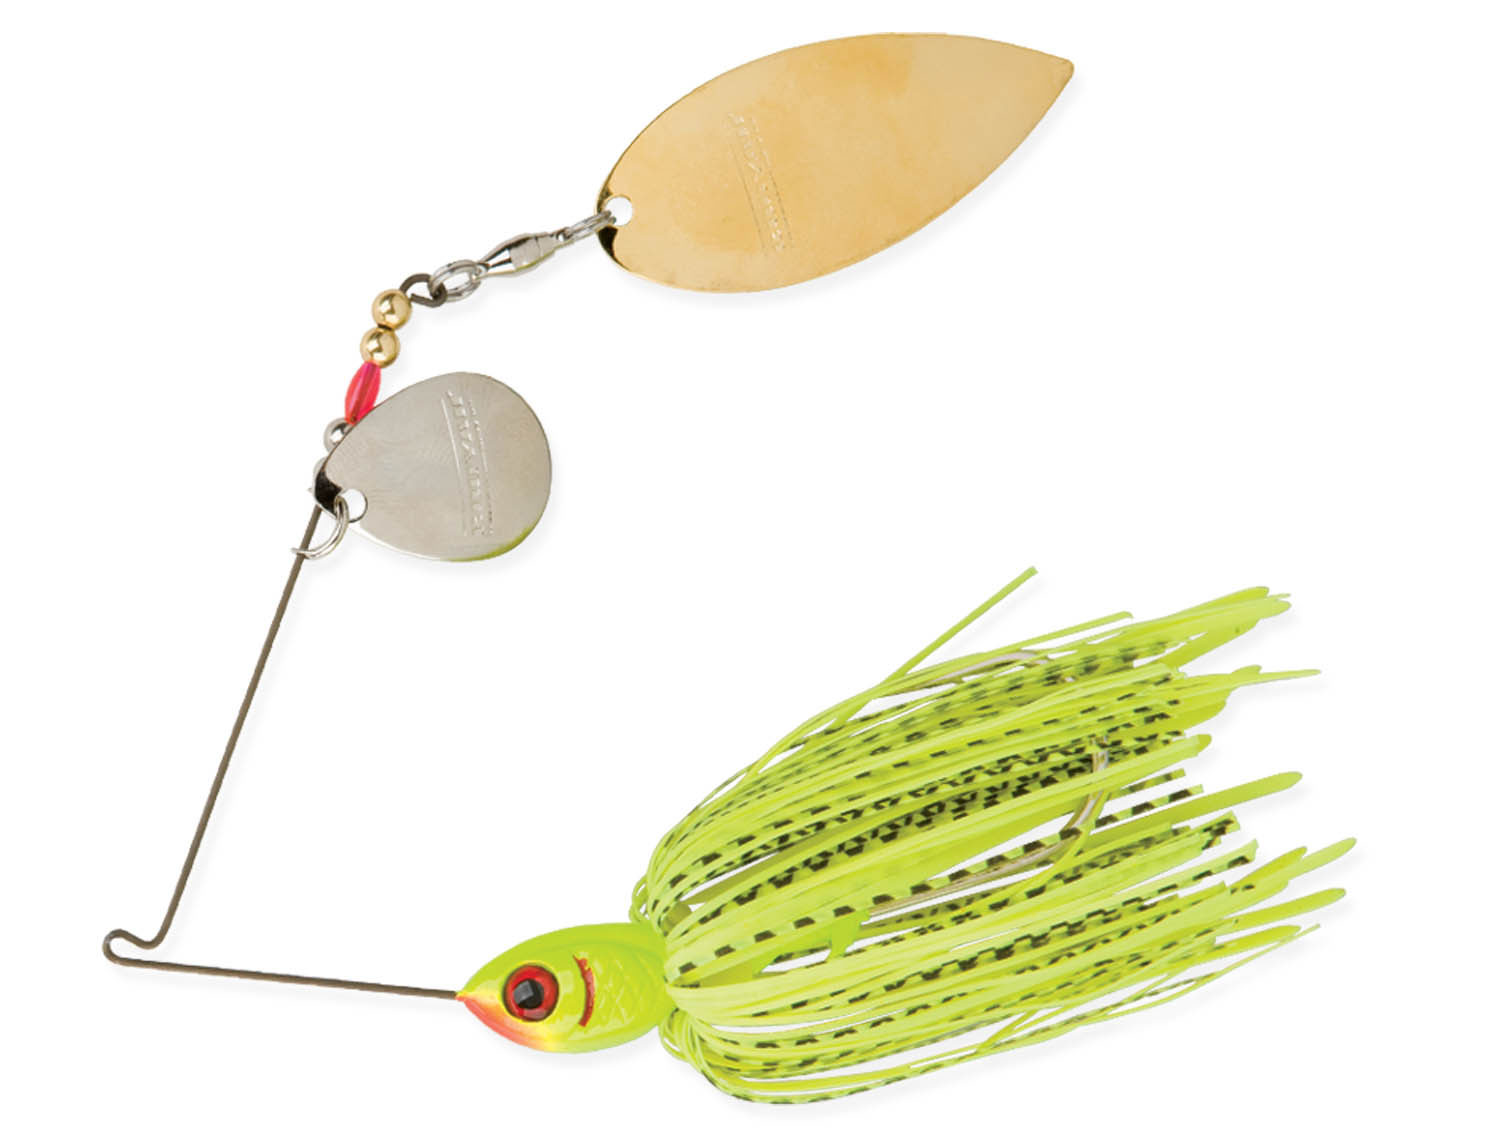 Bwca favorite spinnerbait boundary waters fishing forum for Names of fishing lures